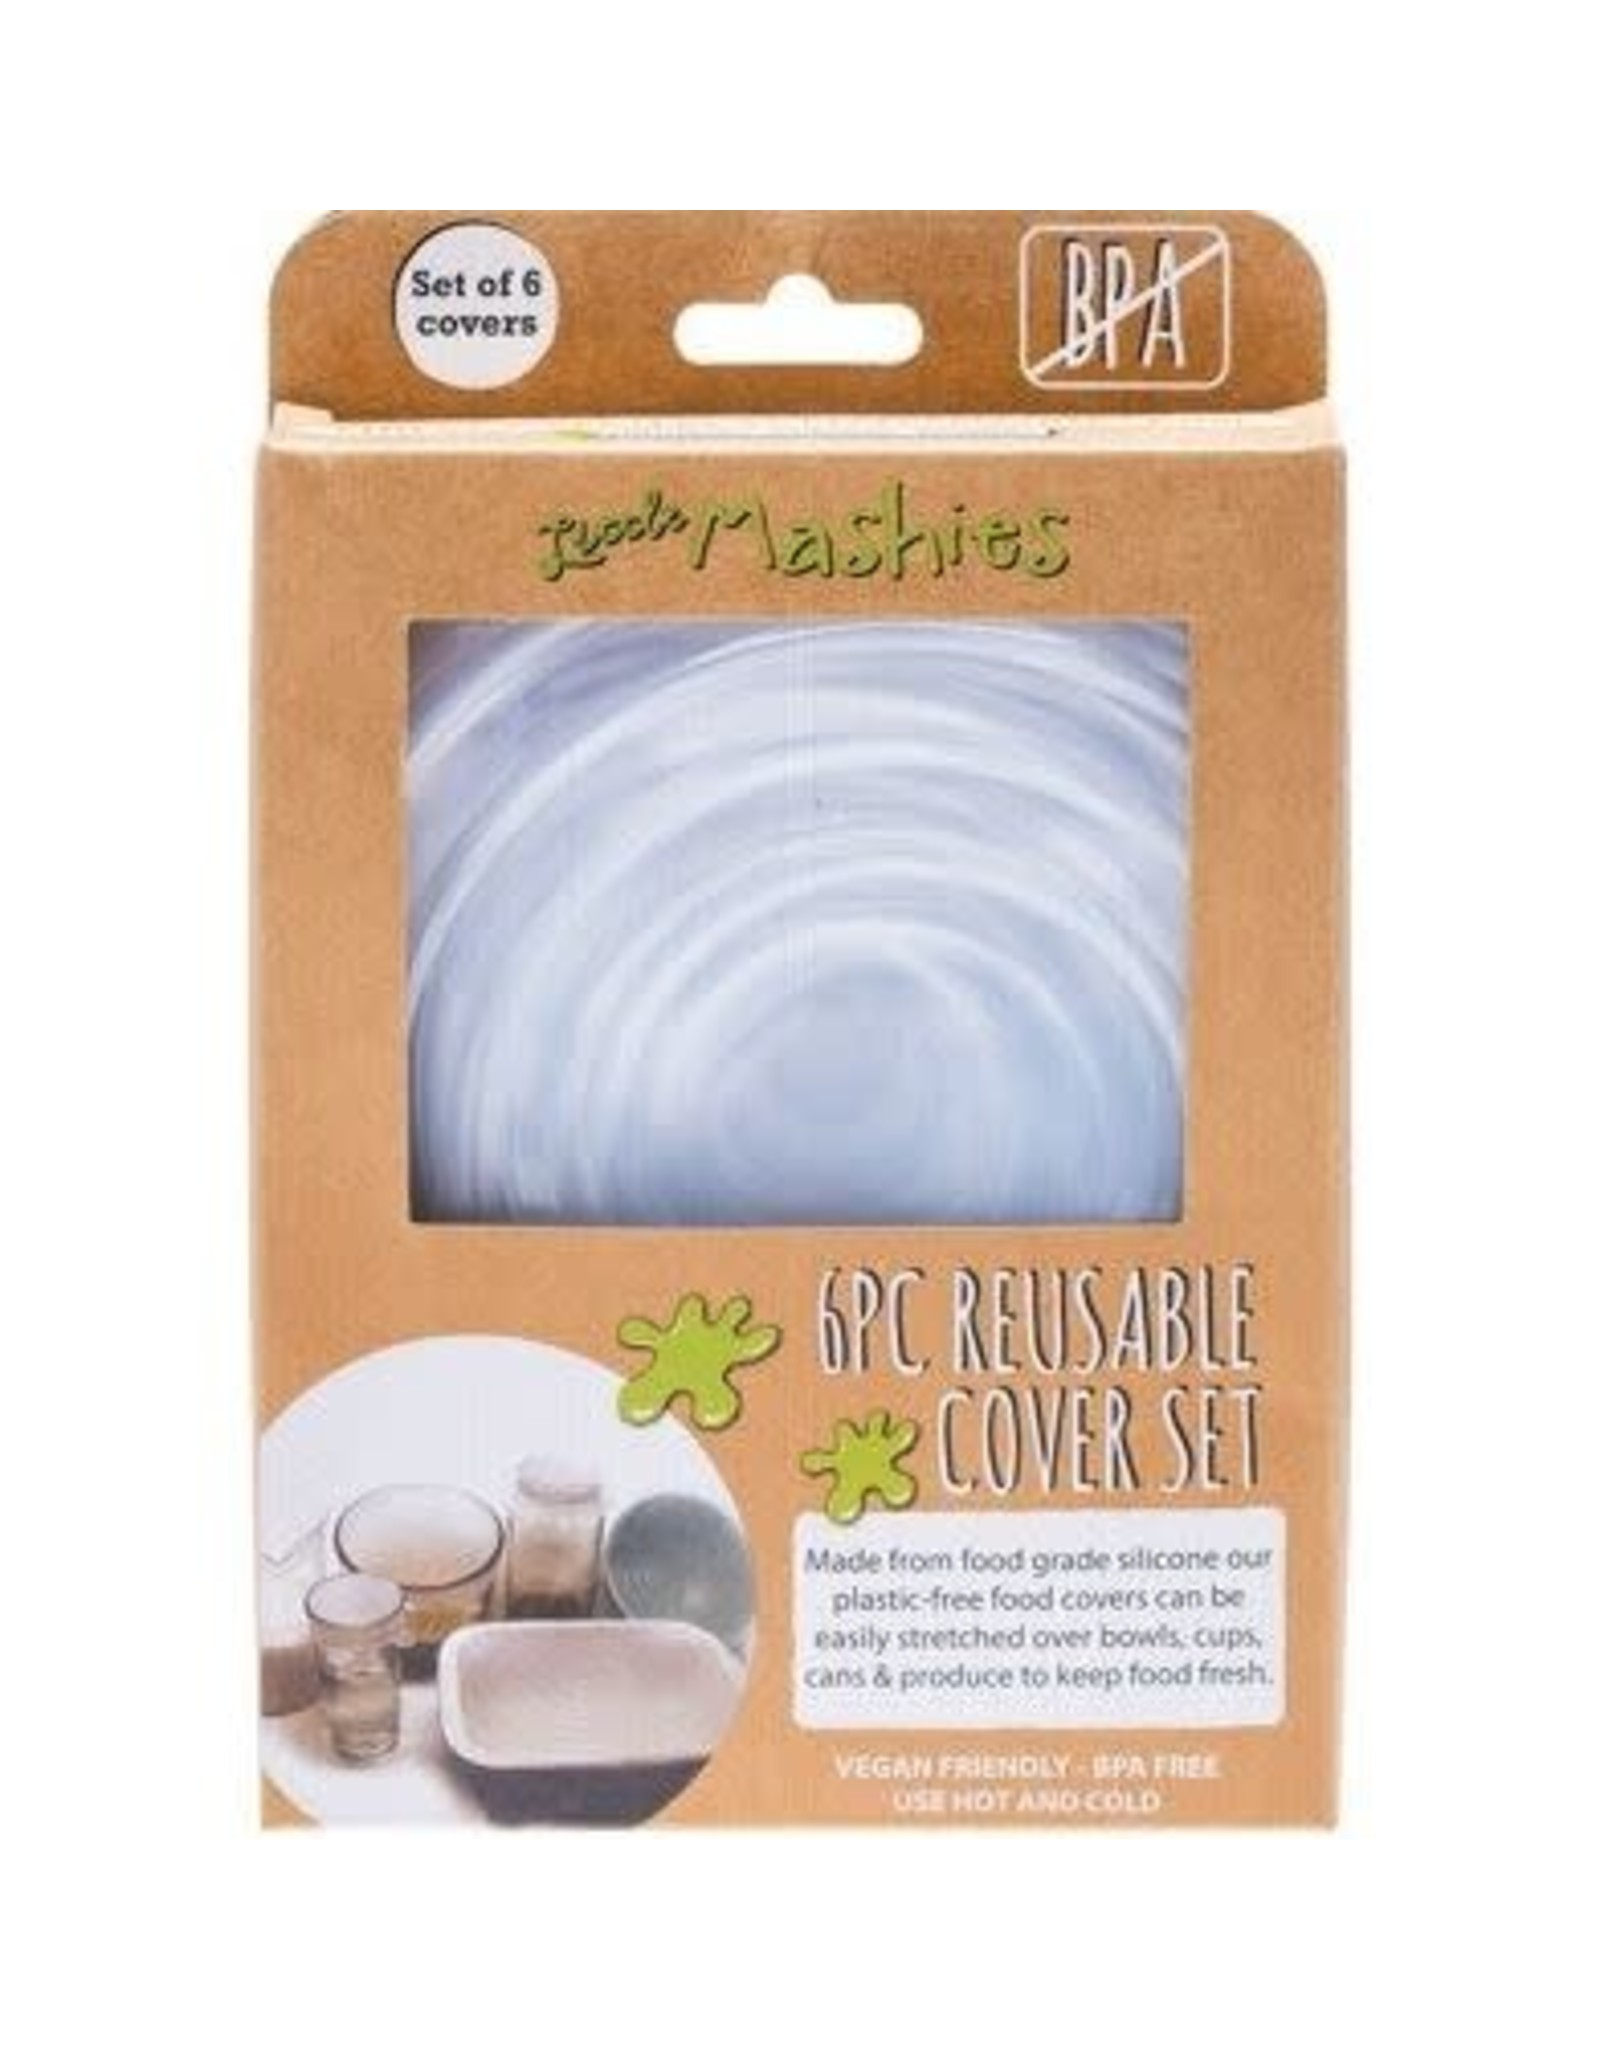 Little Mashies Reusable Bowl Cover Set - Pack of 6